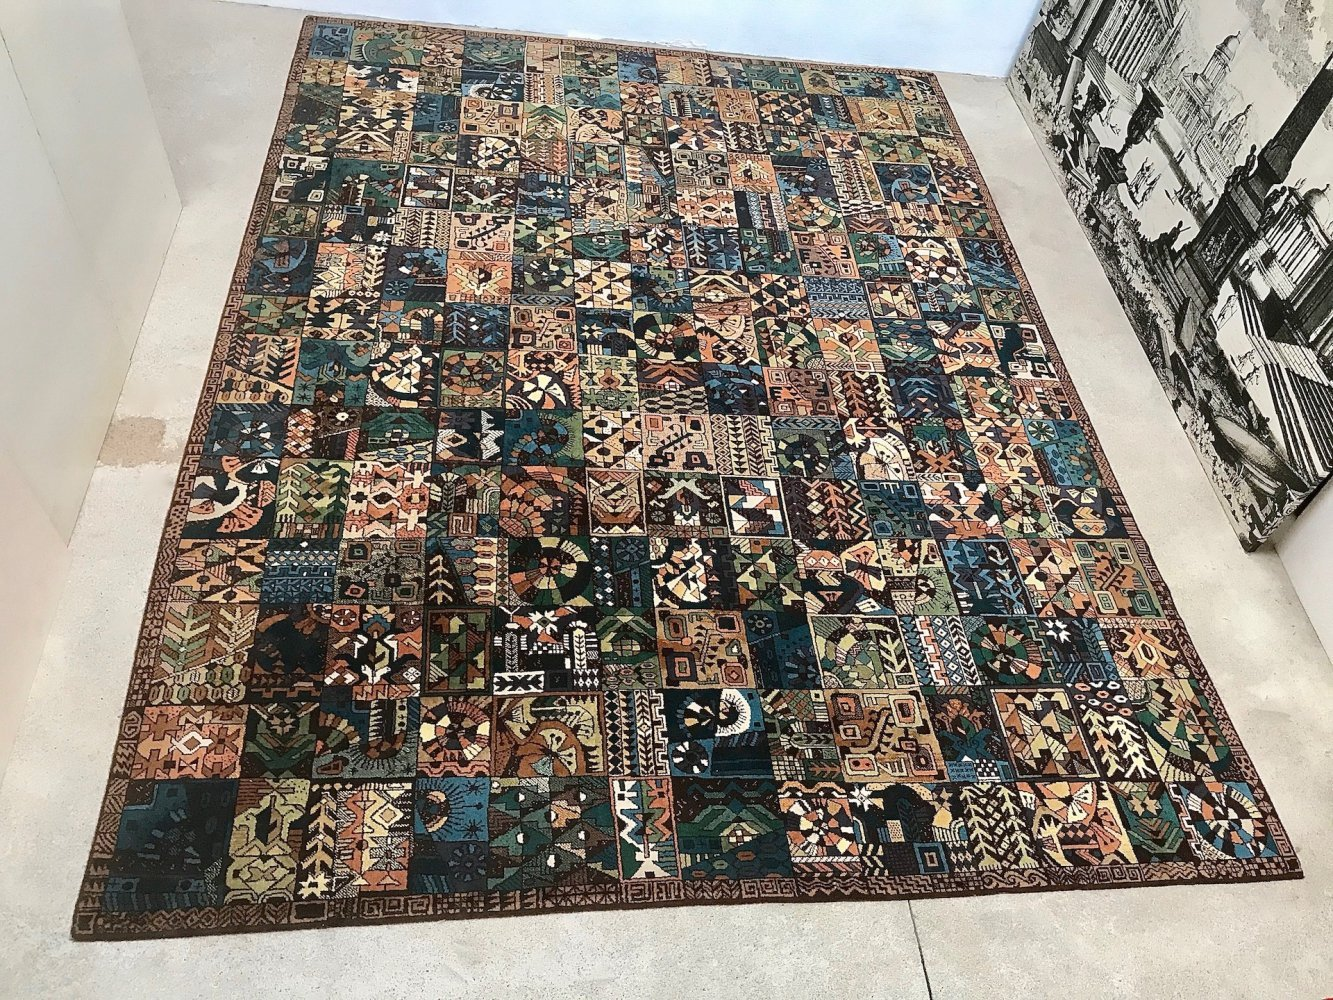 Large German Parsa Collection Abstract Graphic Artist Rug by Vorwerk, 1960s